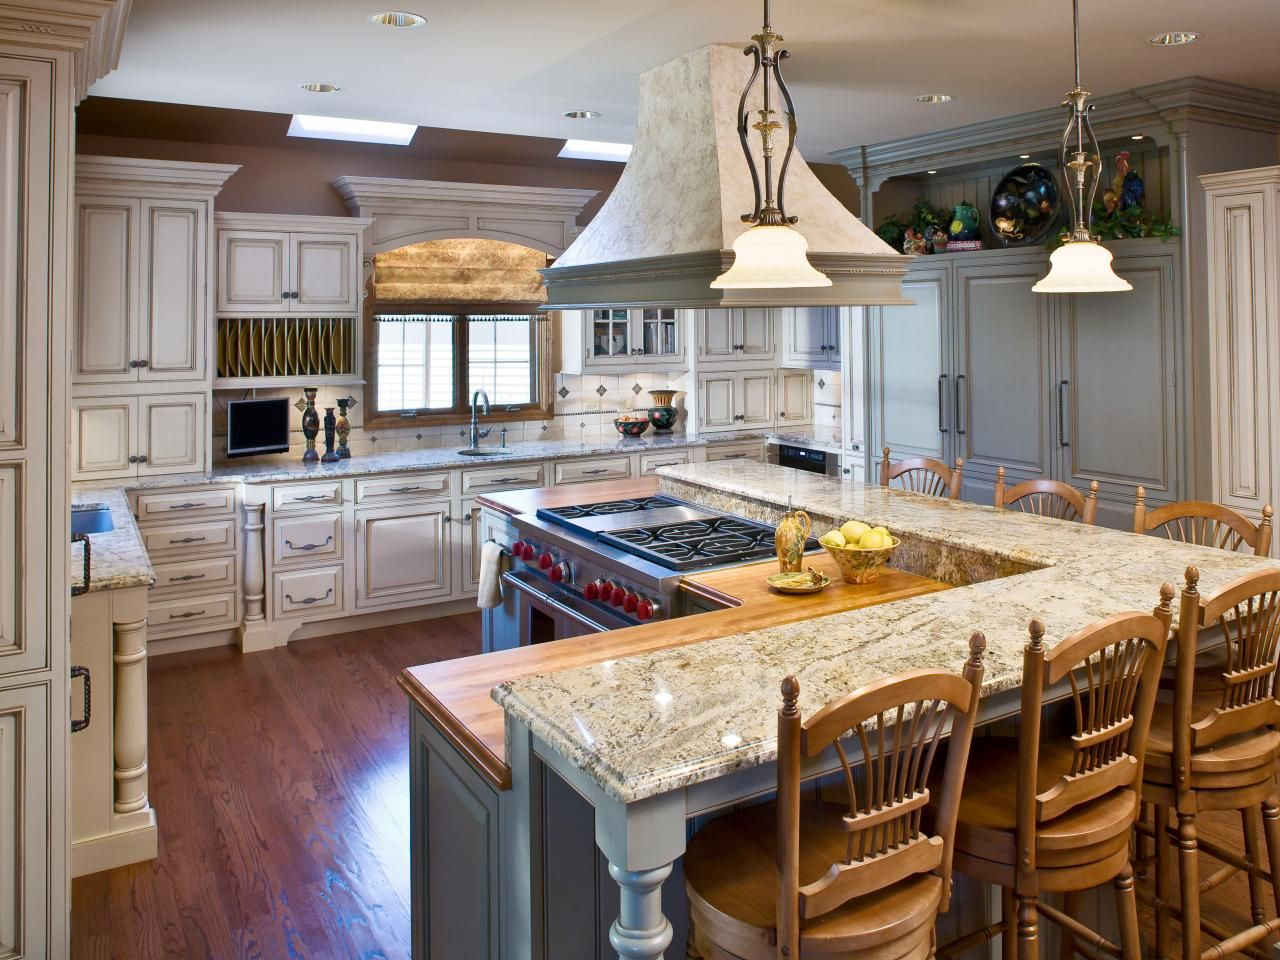 Kitchen ideas design styles and layout options kitchen designs choose kitchen layouts remodeling materials hgtv